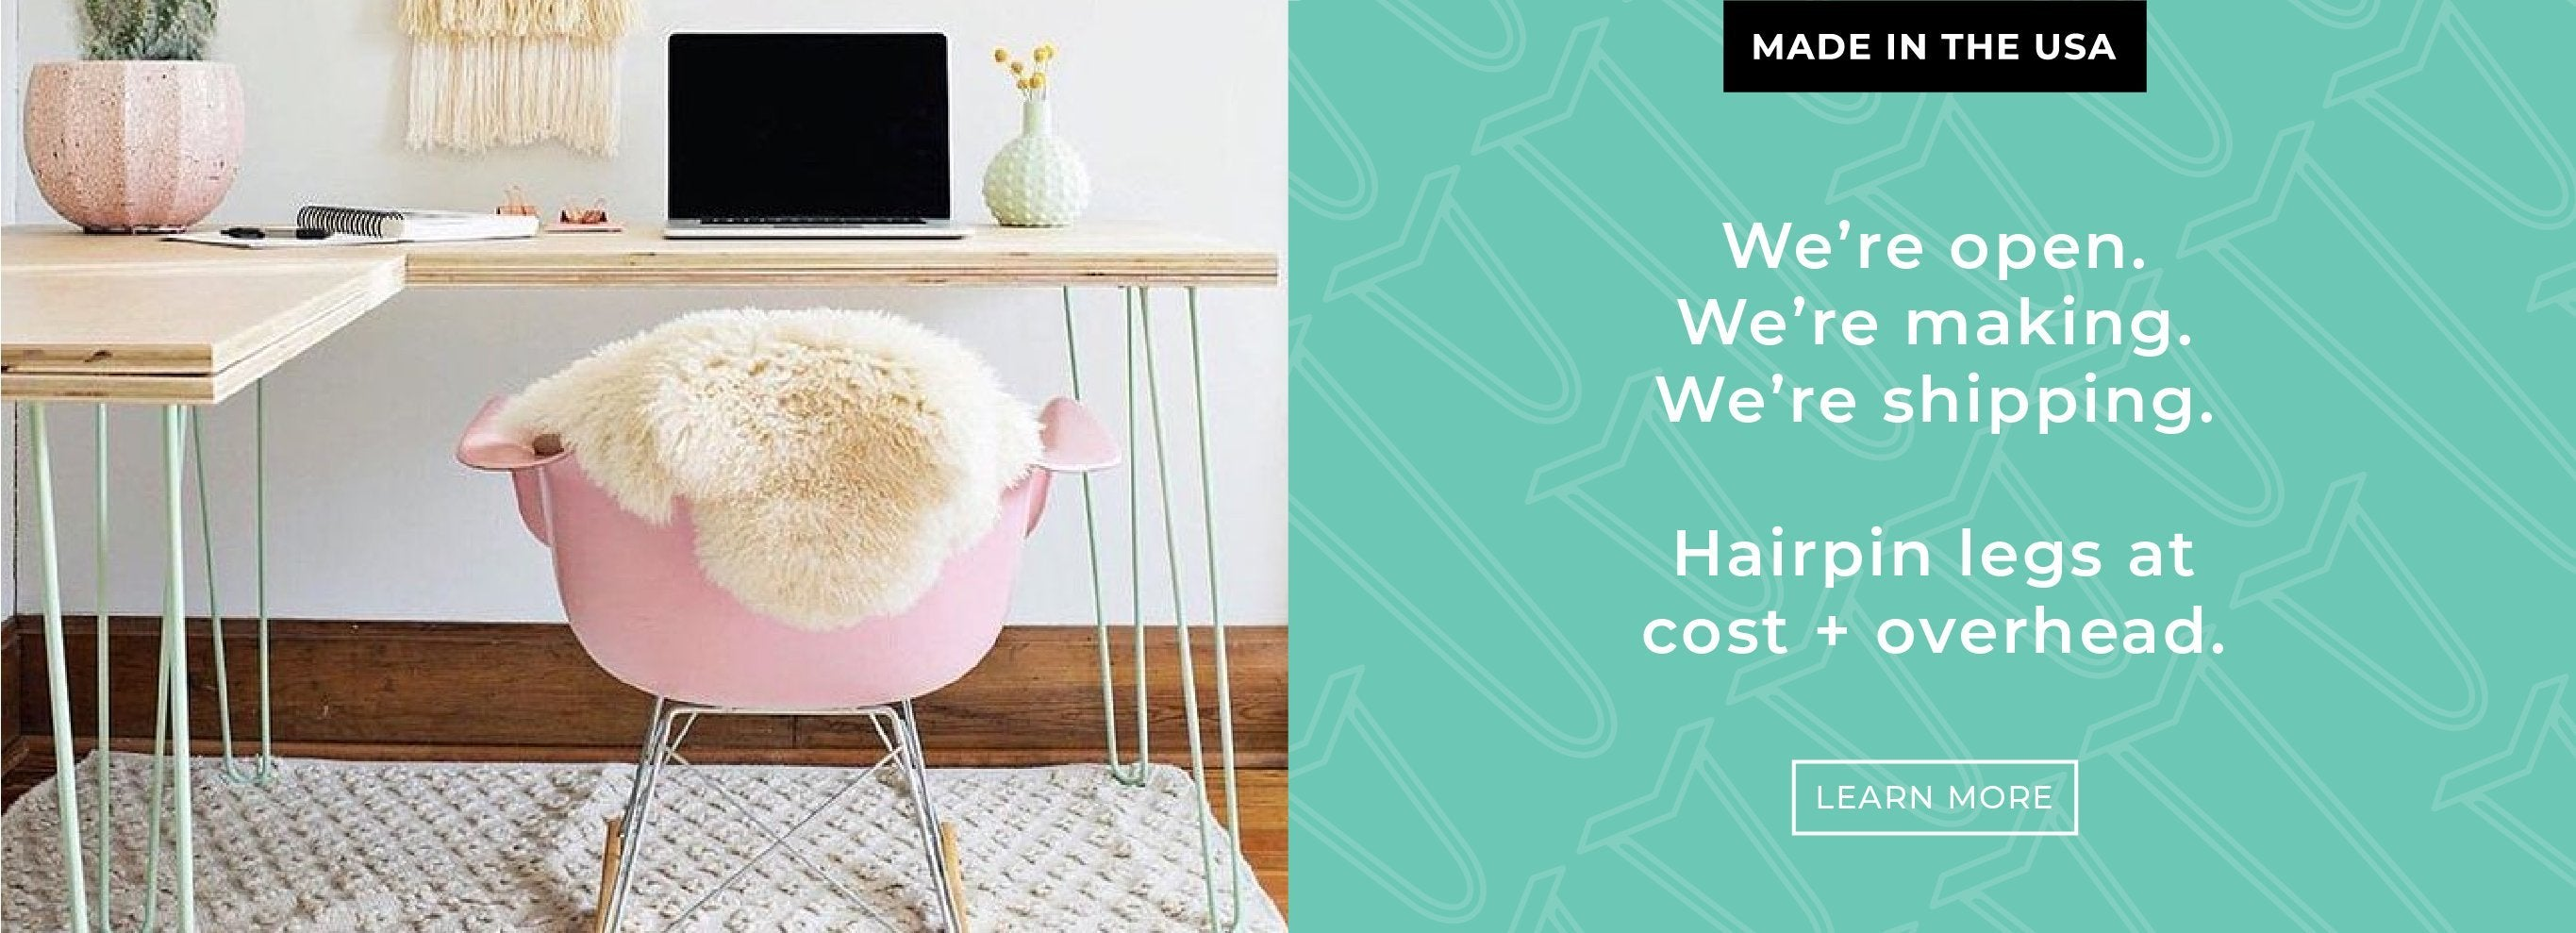 diy-hairpin-legs-largest-selection-hairpin-legs